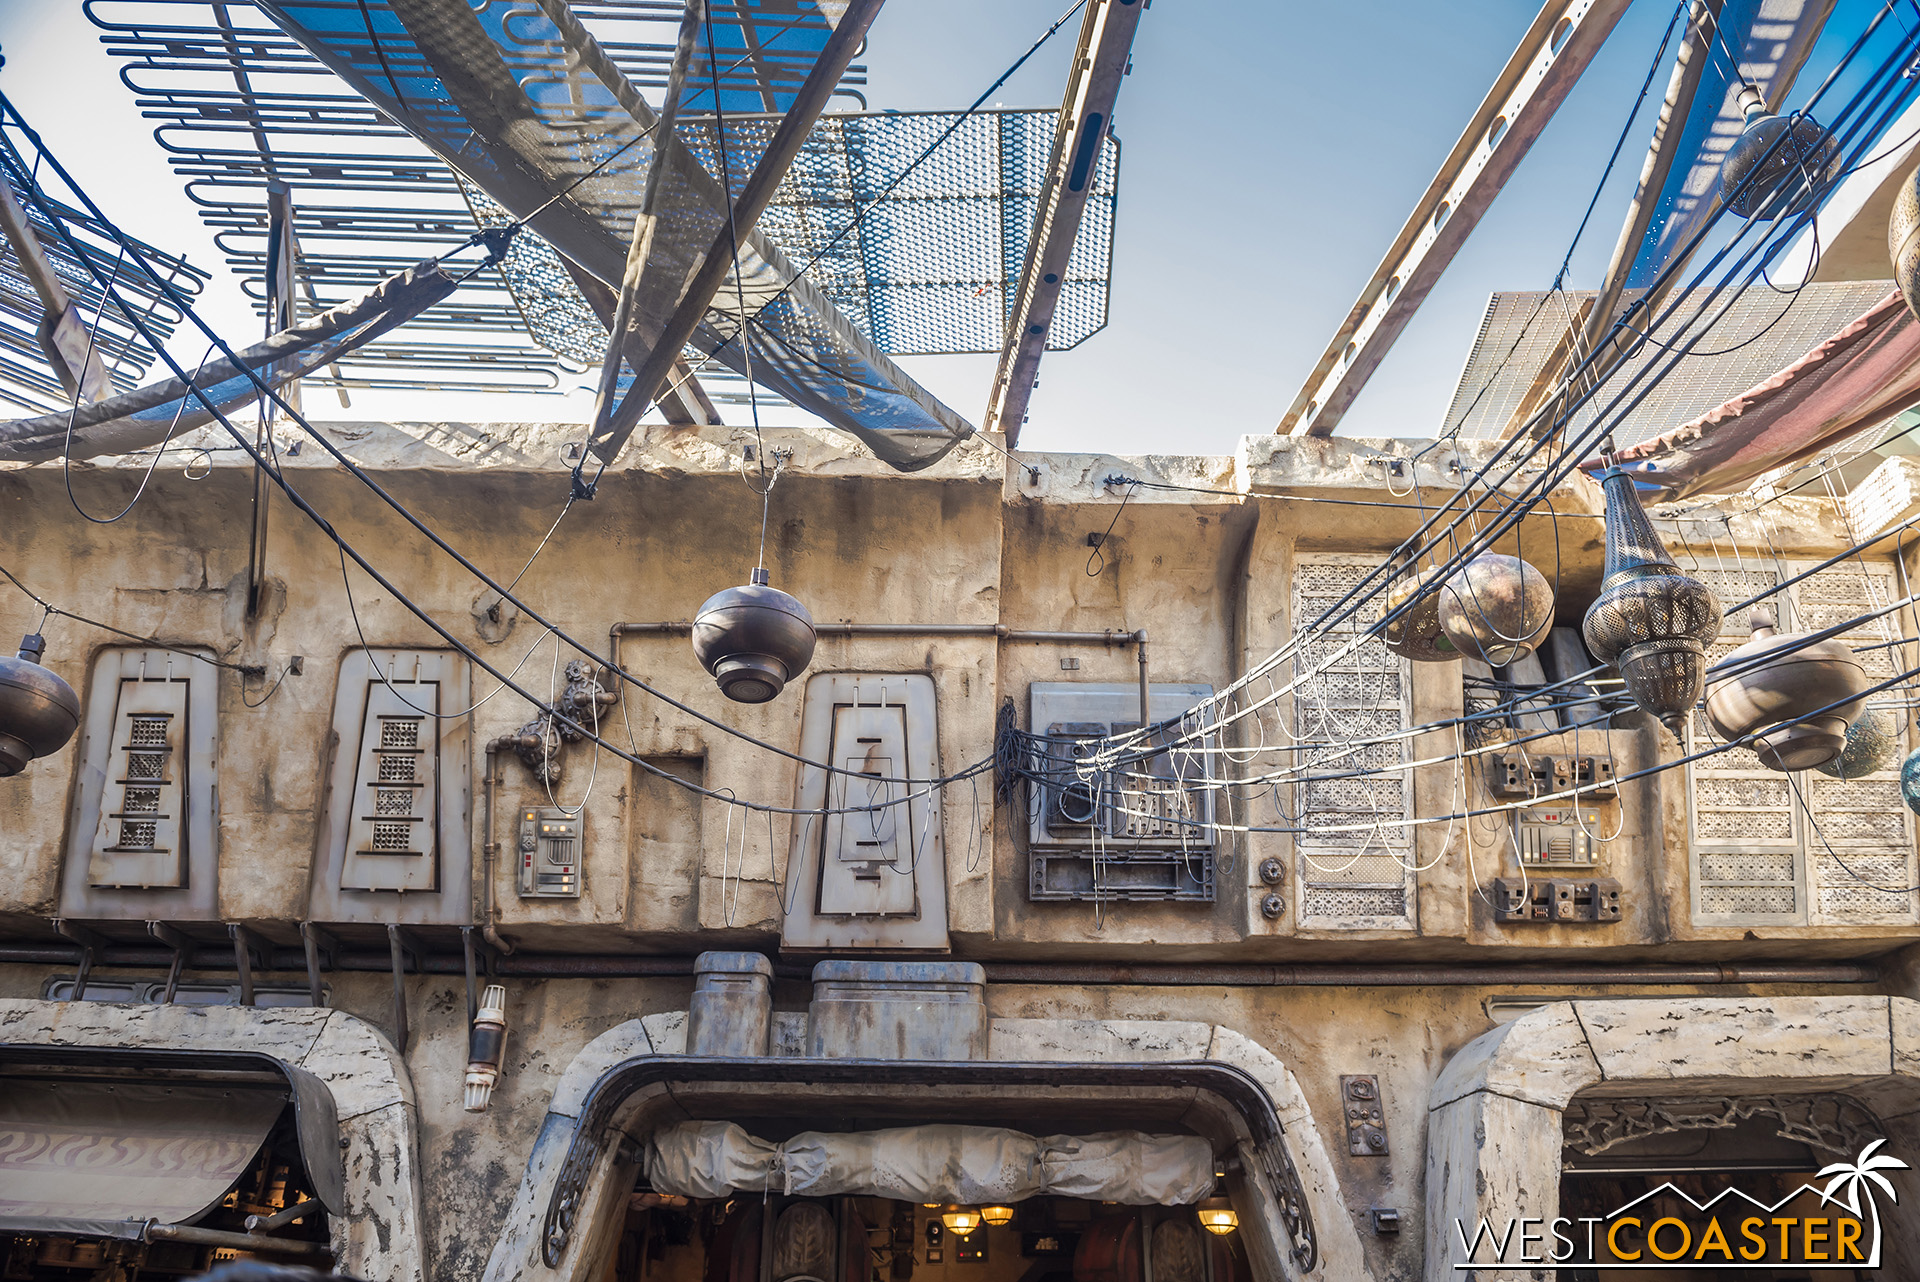 The Imagineers did a great job of capturing that inspiration and translating it to an intergalactic architectural language.